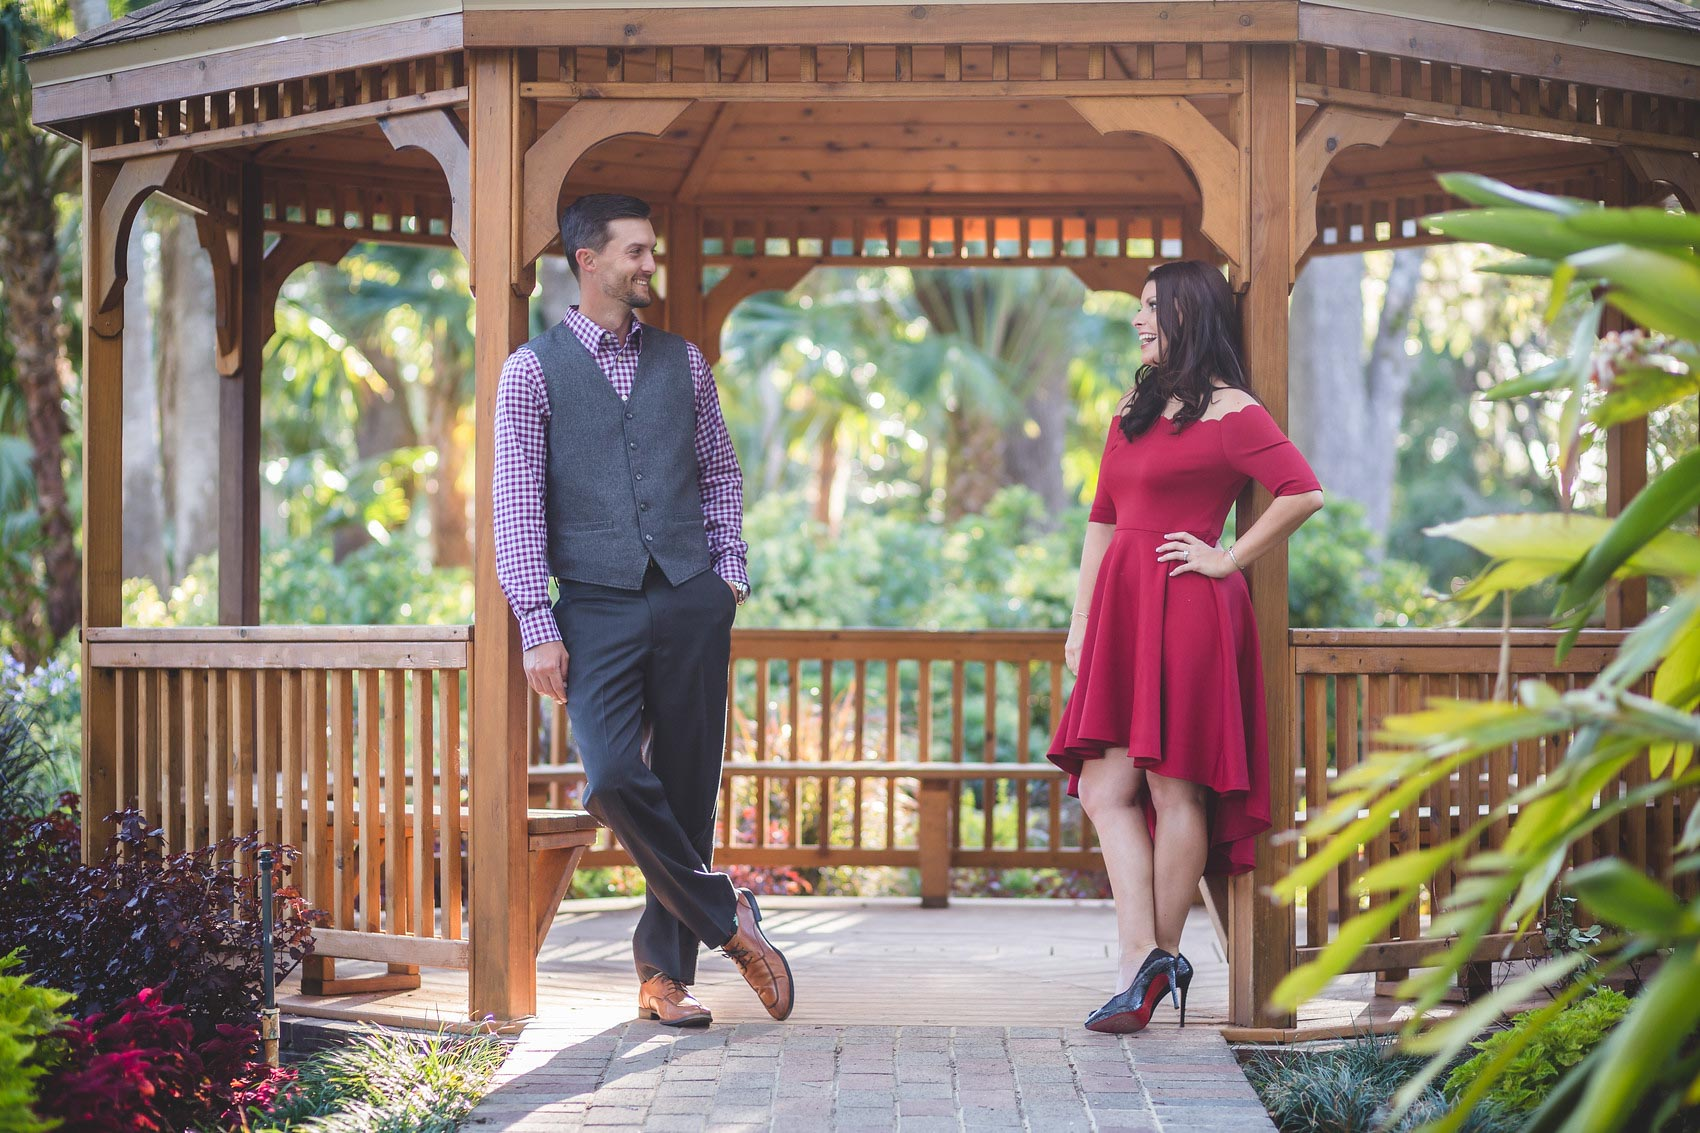 adam-szarmack-jacksonville-wedding-photographer-washington-oaks-gardens-state-park-engagement-5.jpg